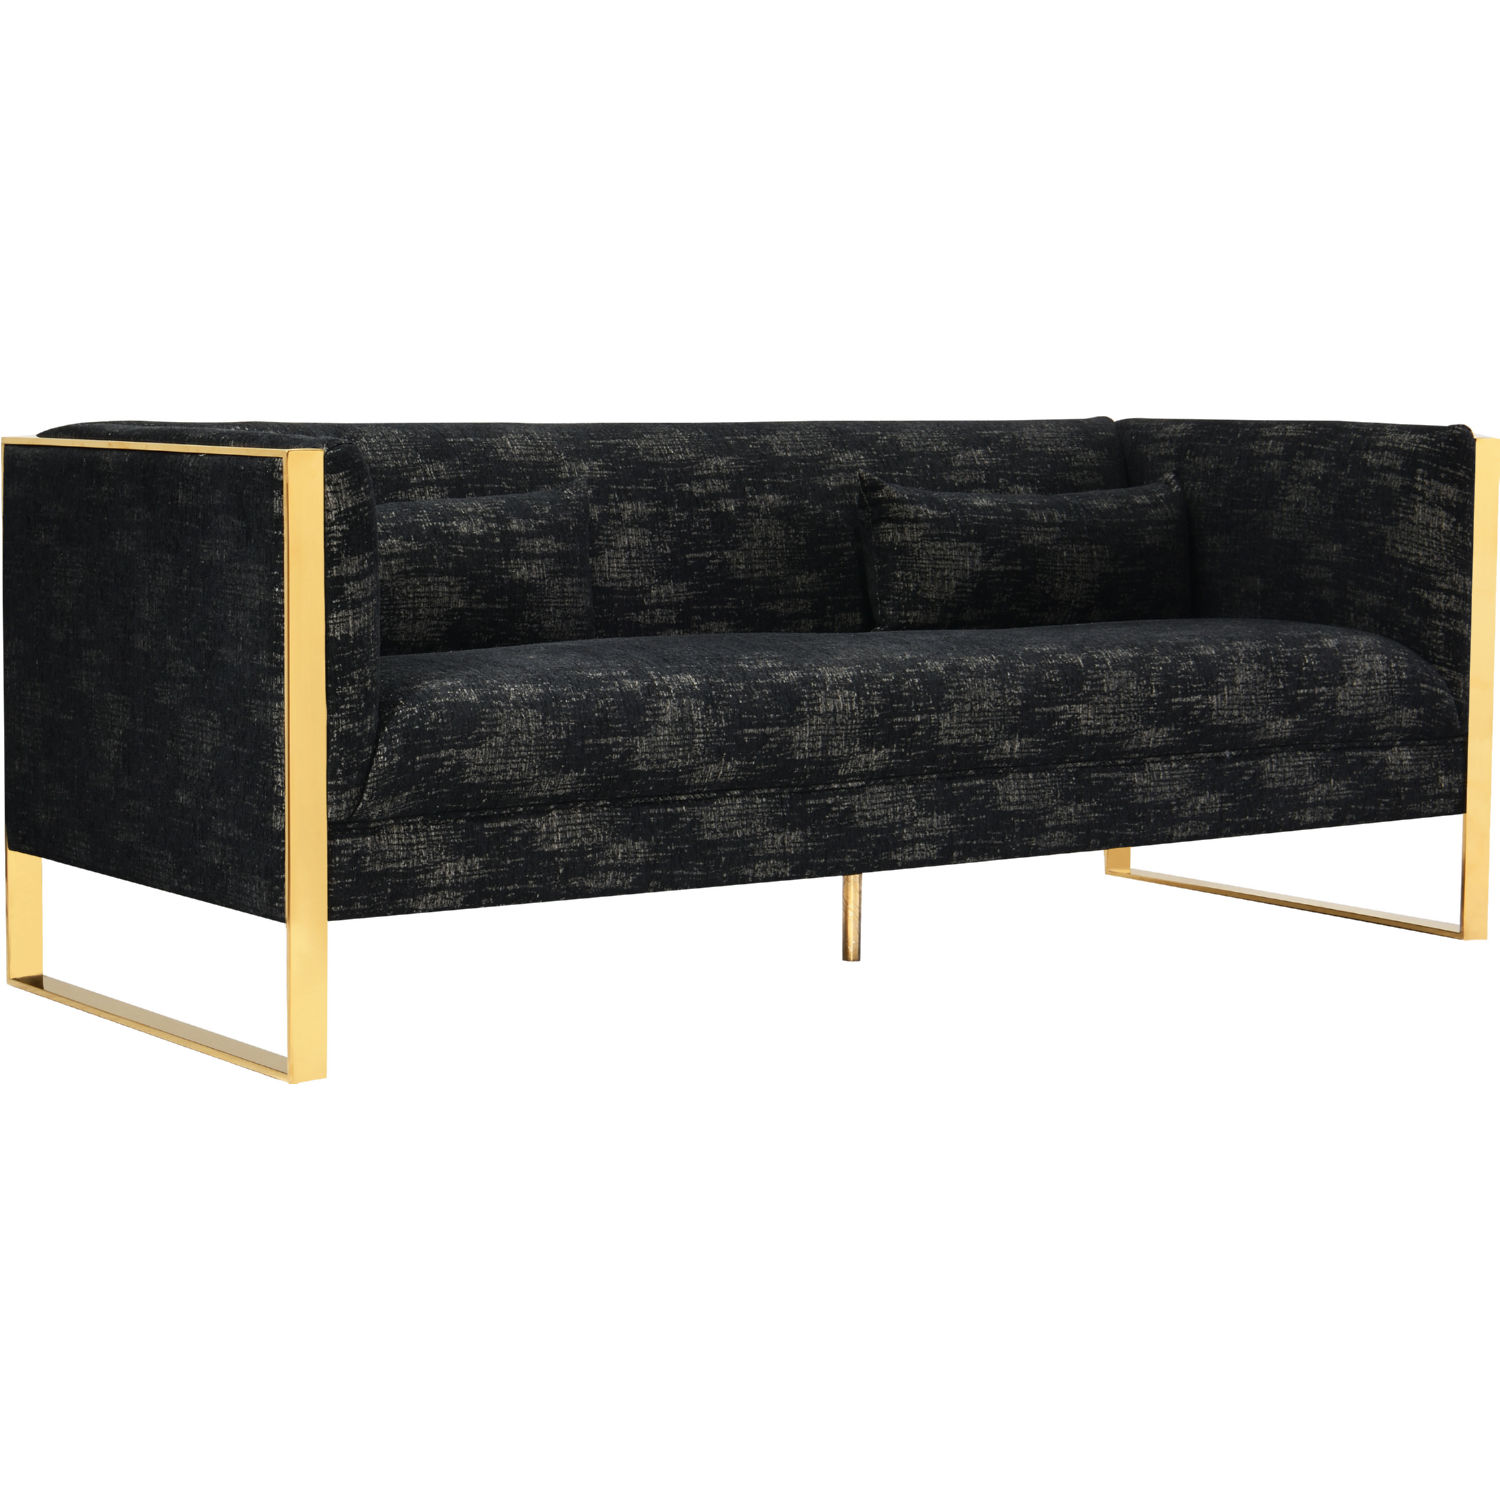 Louvre Sofa in Textured Black Fabric on Gold Metal Frame by Chic Home